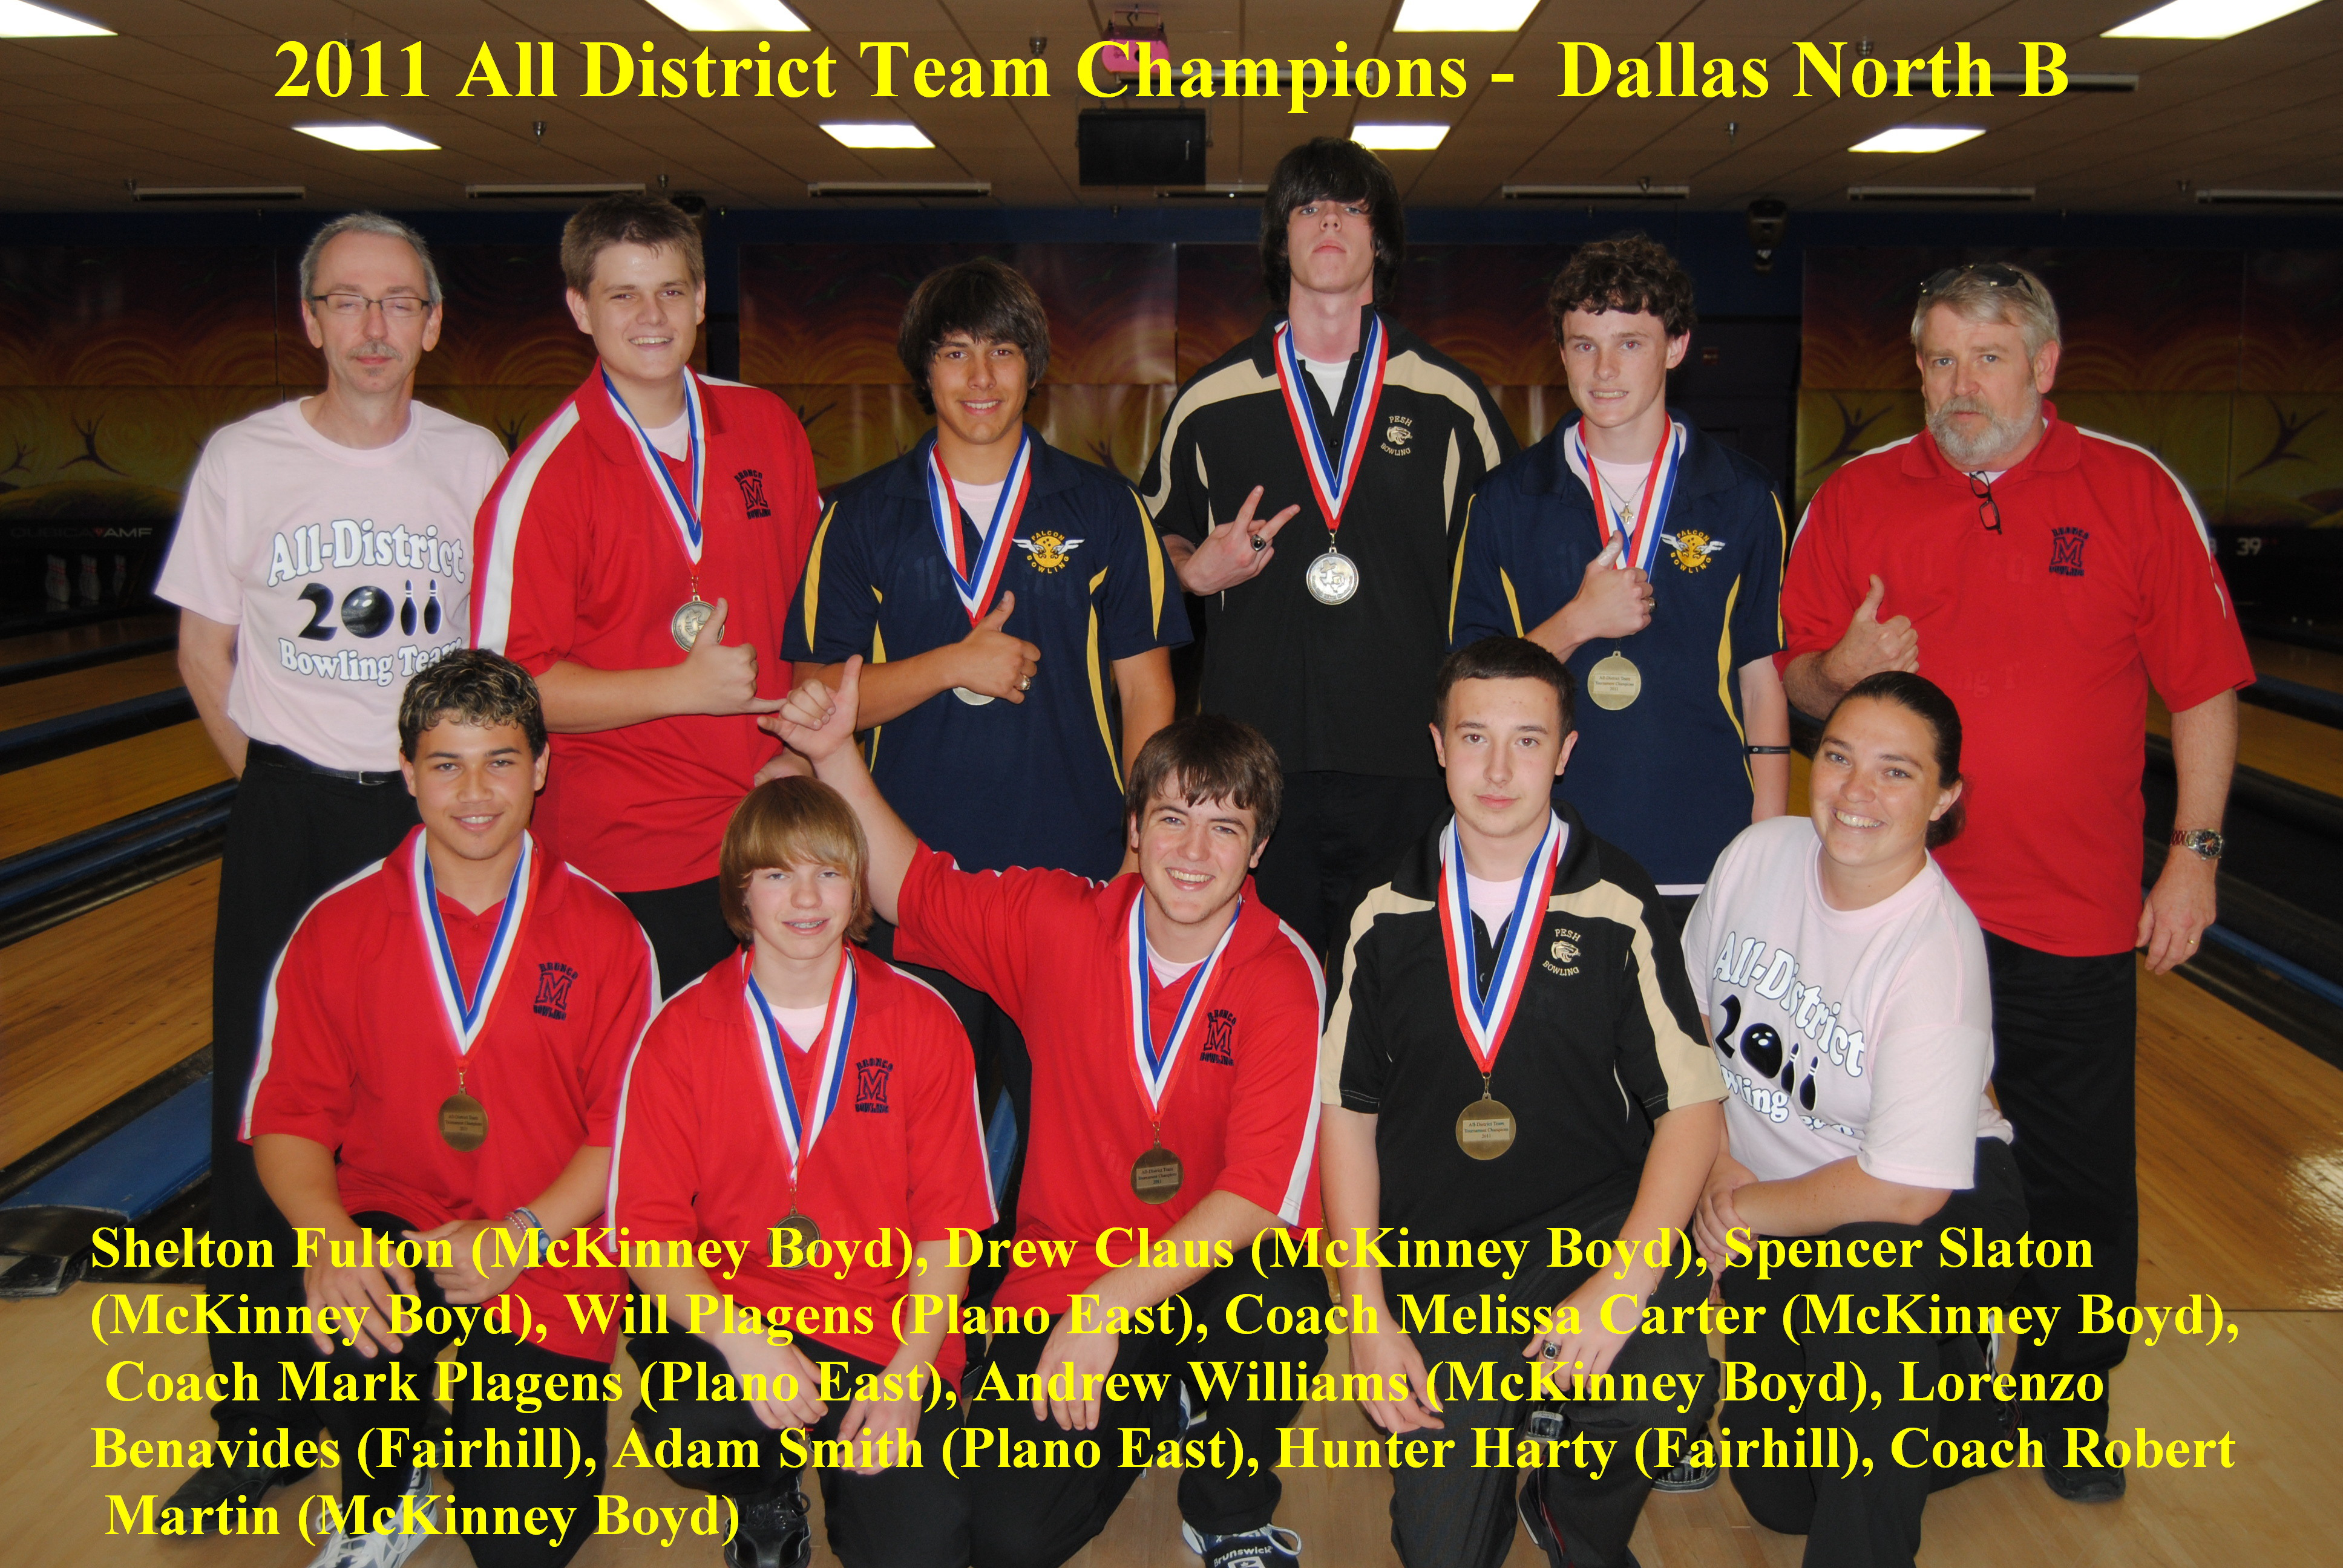 2011 Boys All District